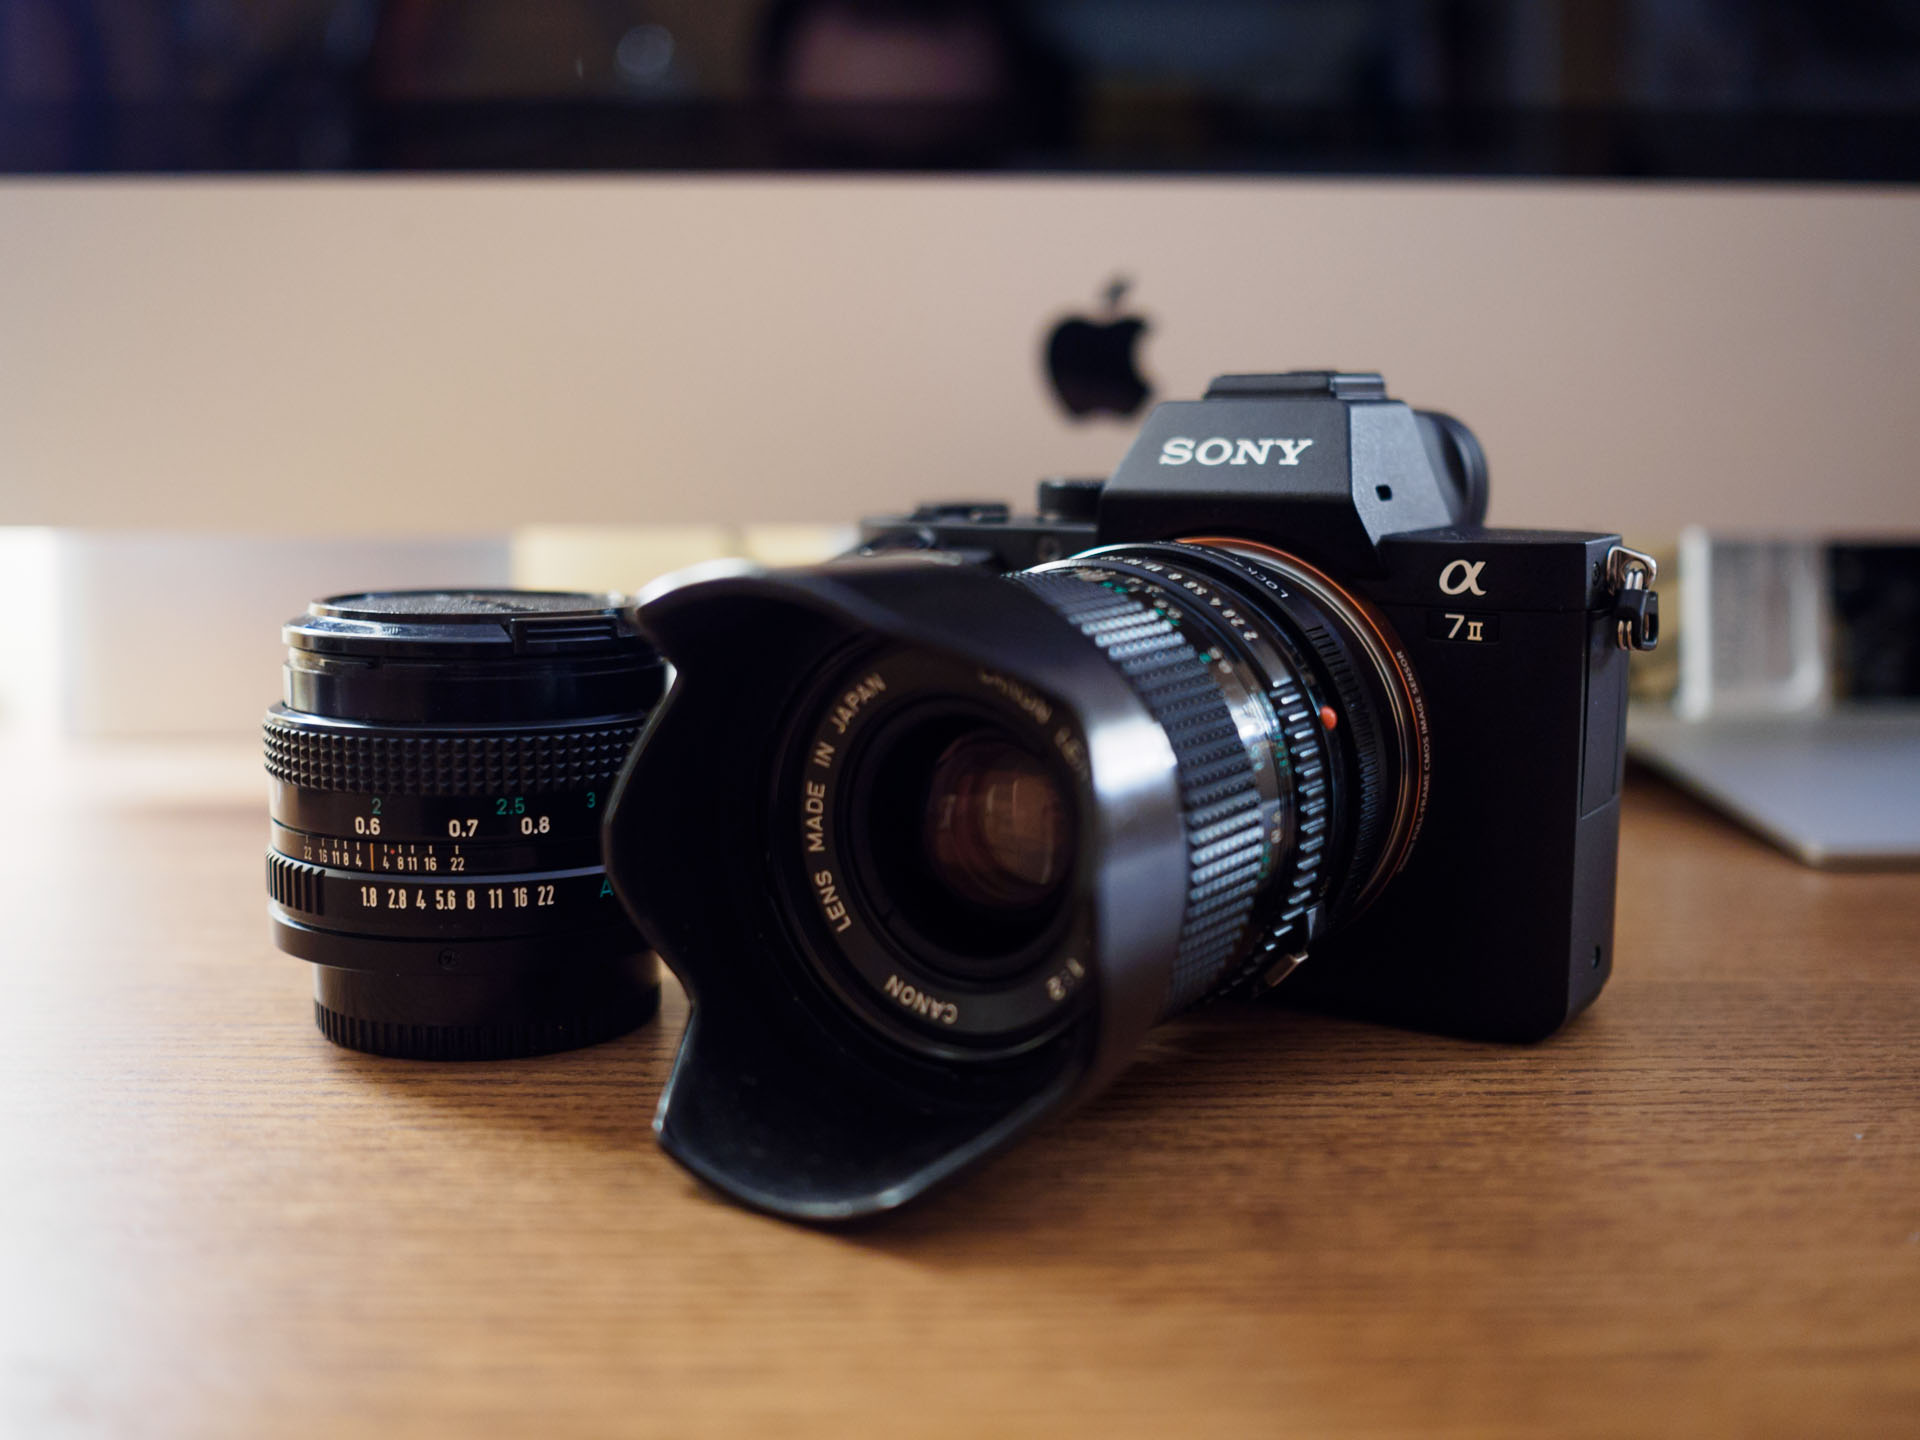 The Sony Alpha 7 Mark Ii Camera Review Tools And Toys La Ea3 Mount Adapter A7